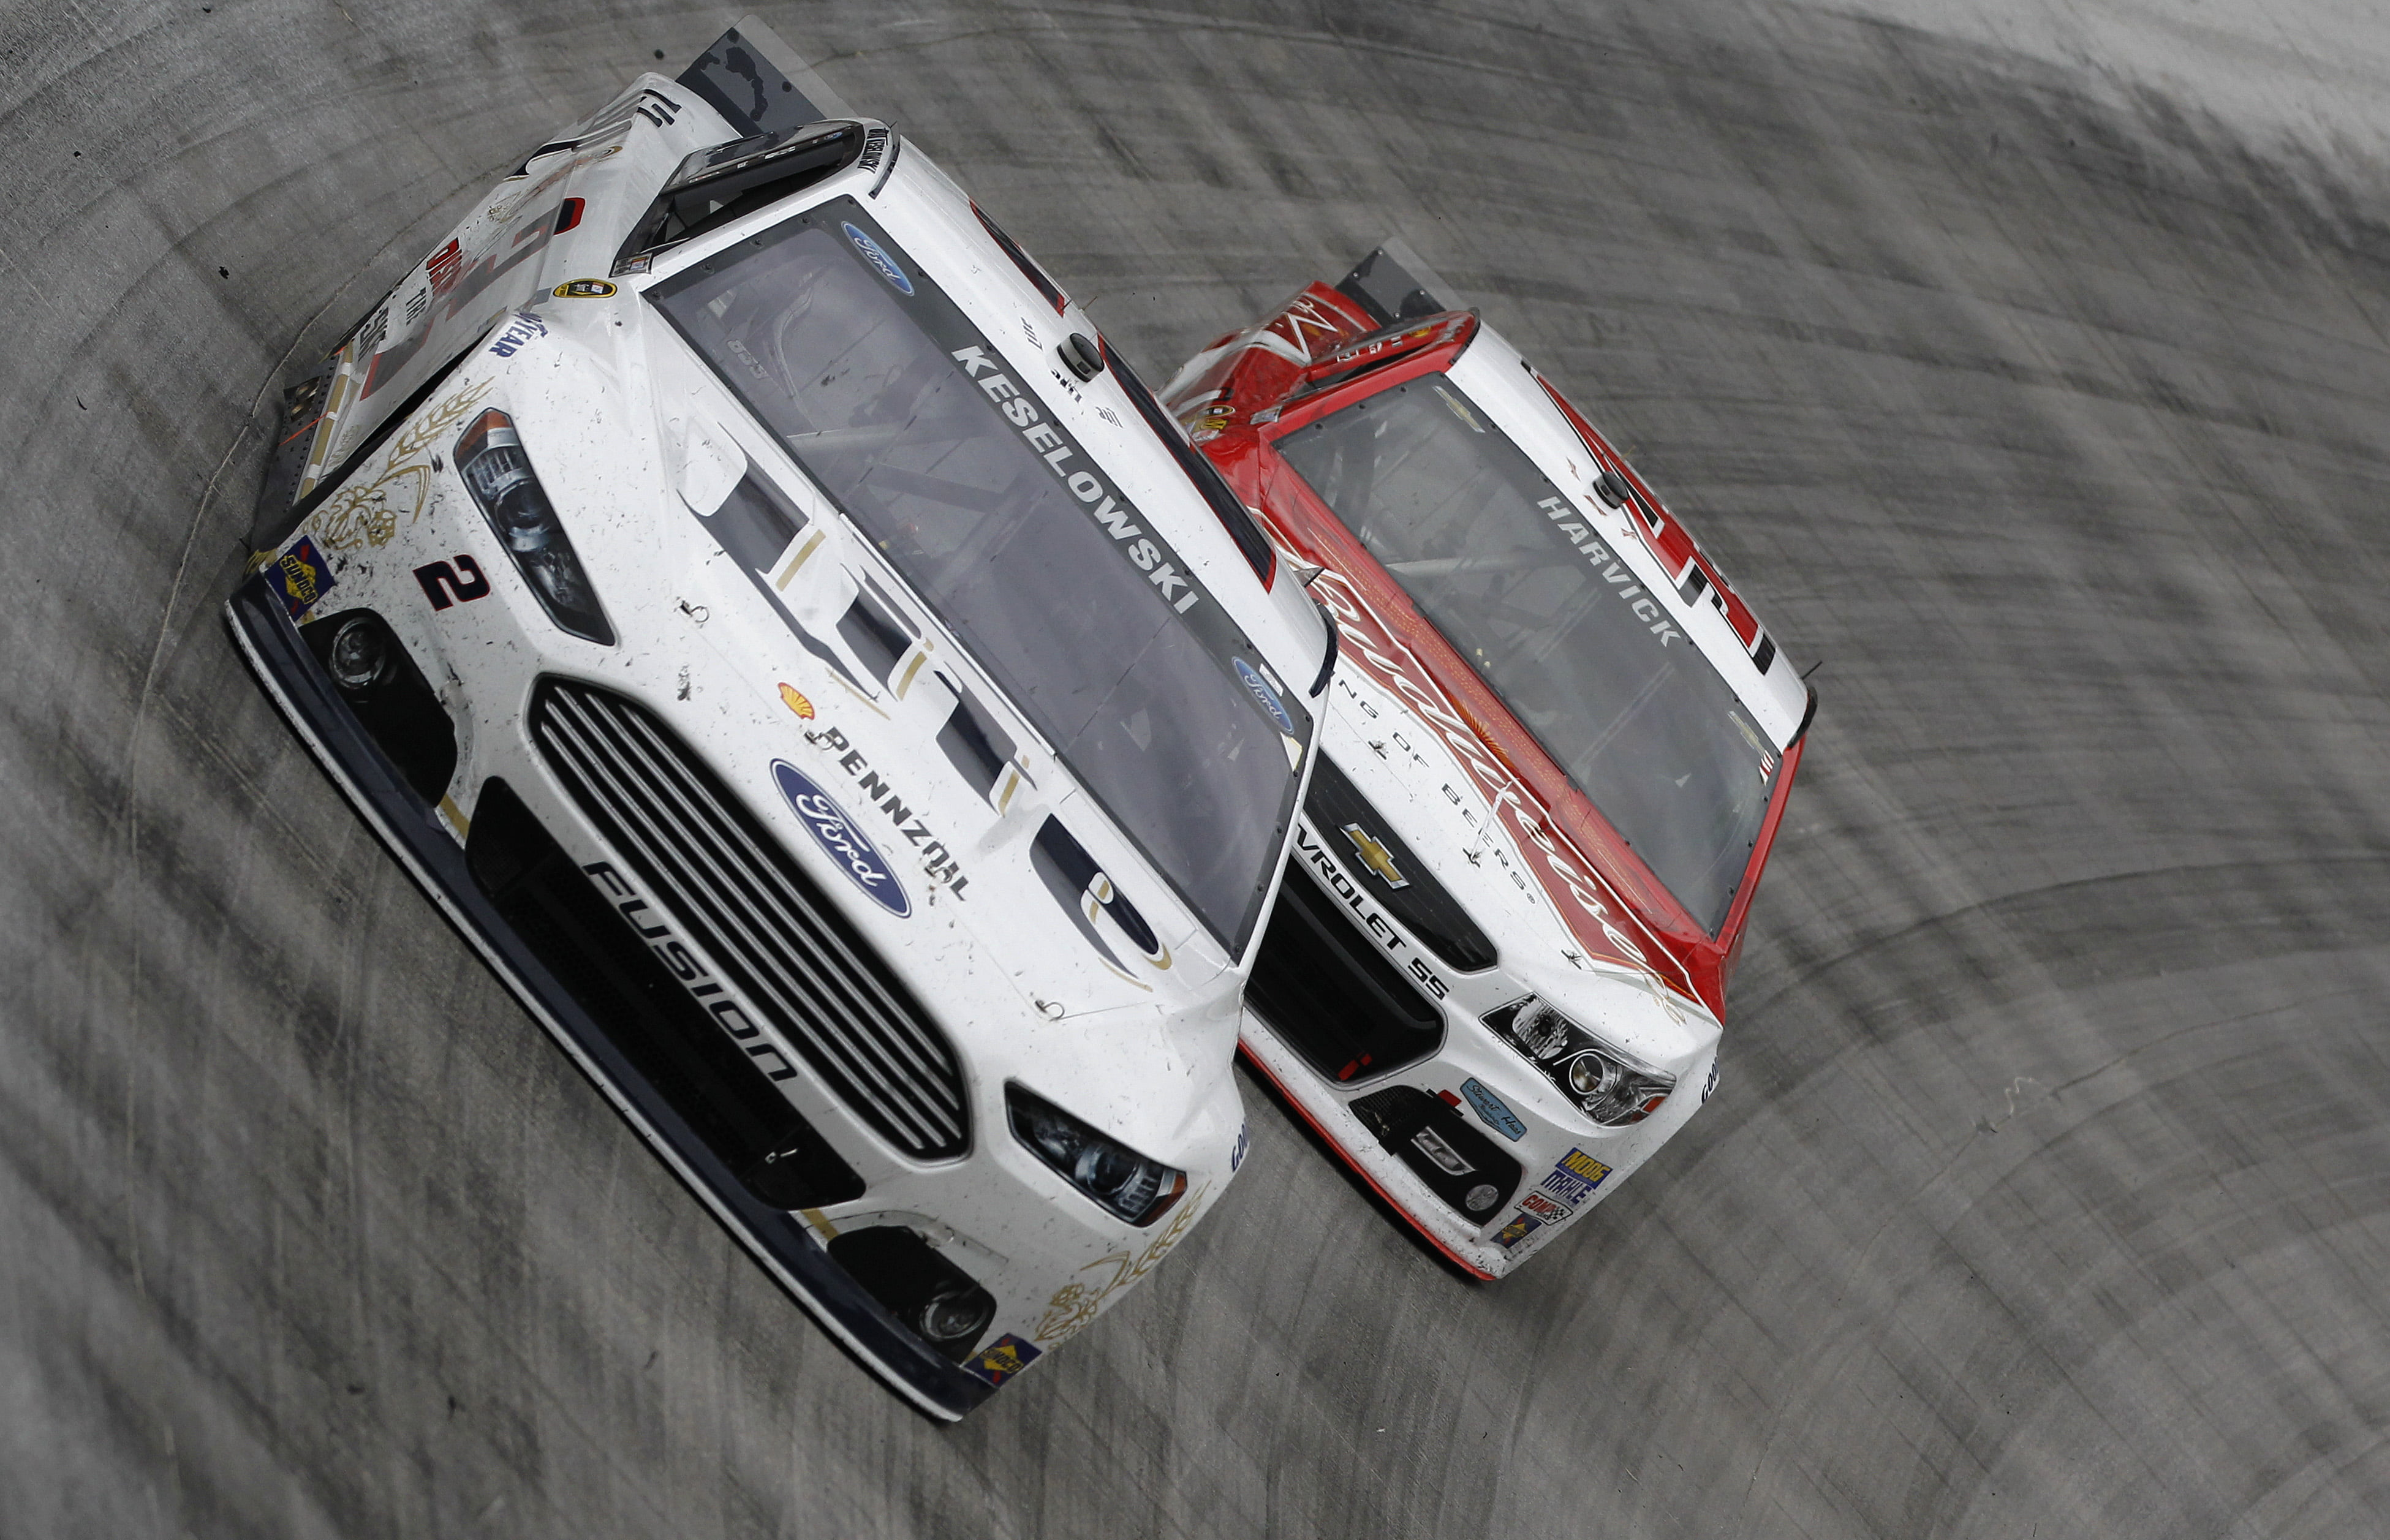 Ford Makes a Strong Showing at Bristol